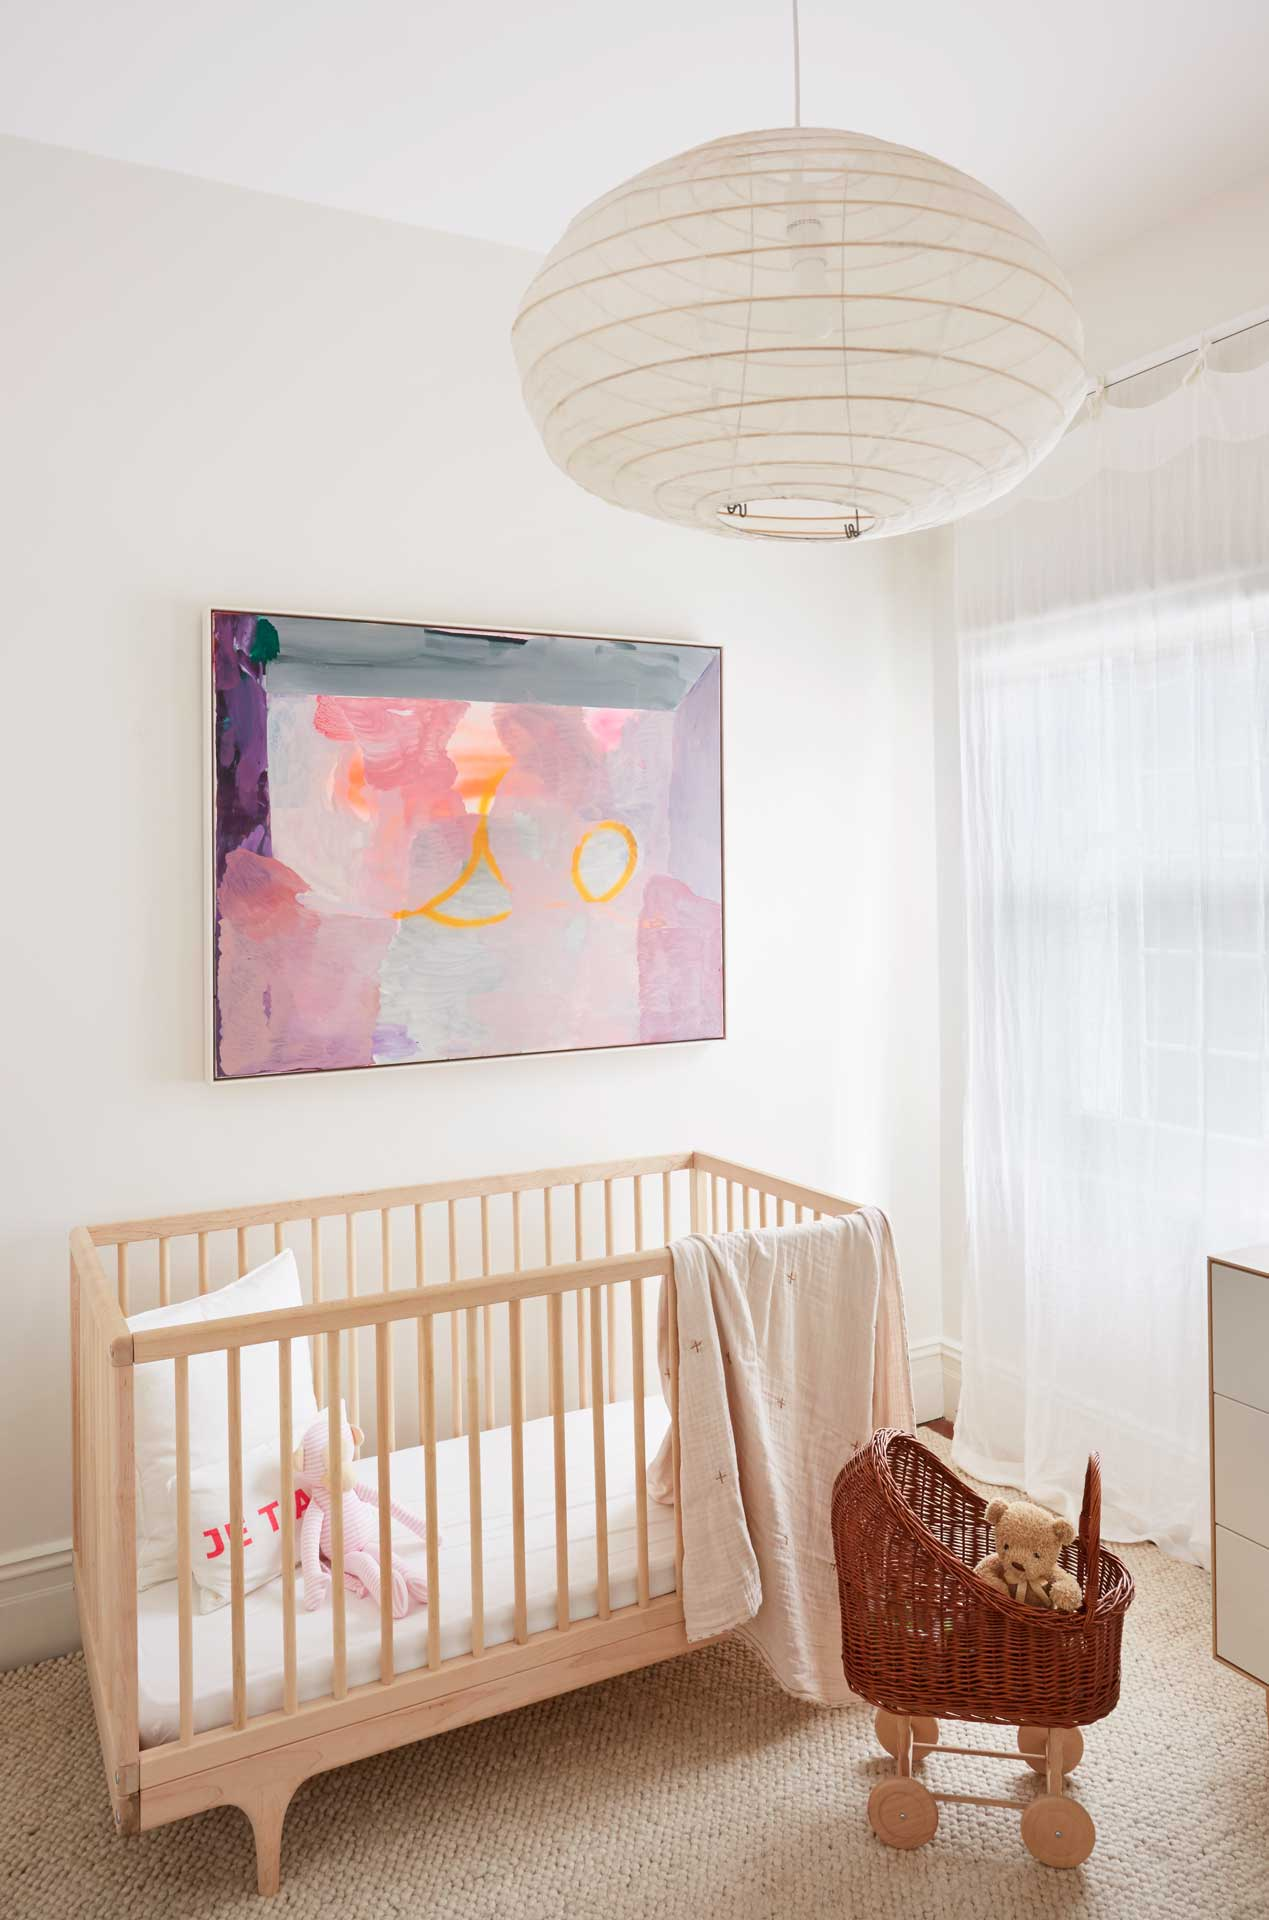 Minty Magazine - Real Room Reveal - Gender-Neutral Space for Baby - September 26 2019